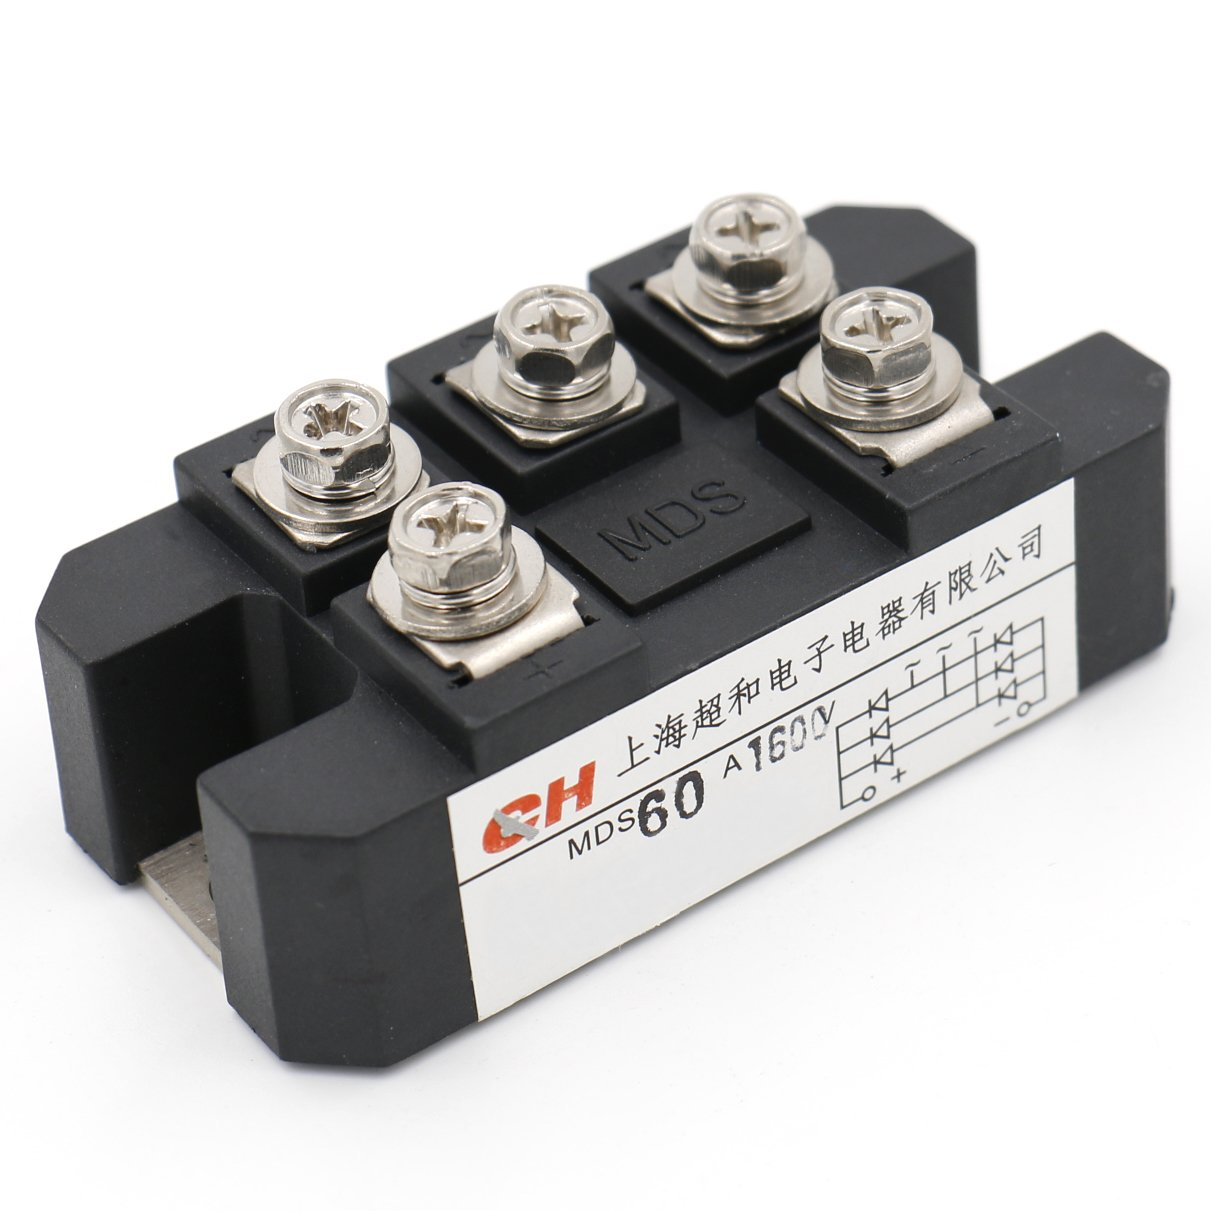 Heschen Three phase bridge rectifier MDS-60A diode module 60A 1600V 5 screw terminals Shanghai Chaohe Electric Co.Ltd